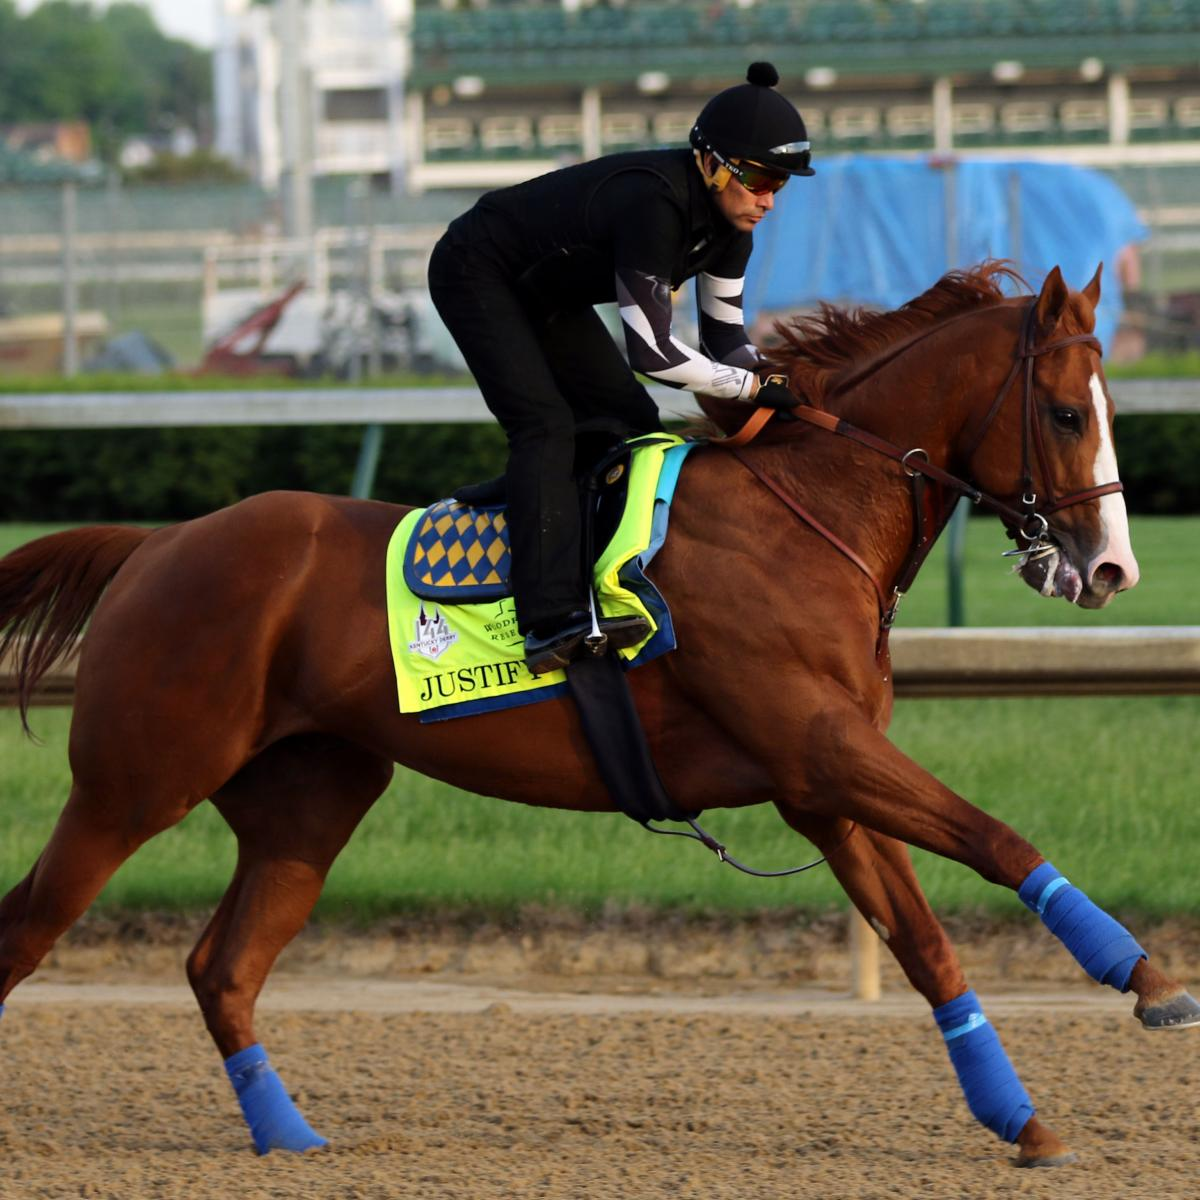 Preakness Entries 2018: Horses in the Field Best Suited for Pimlico